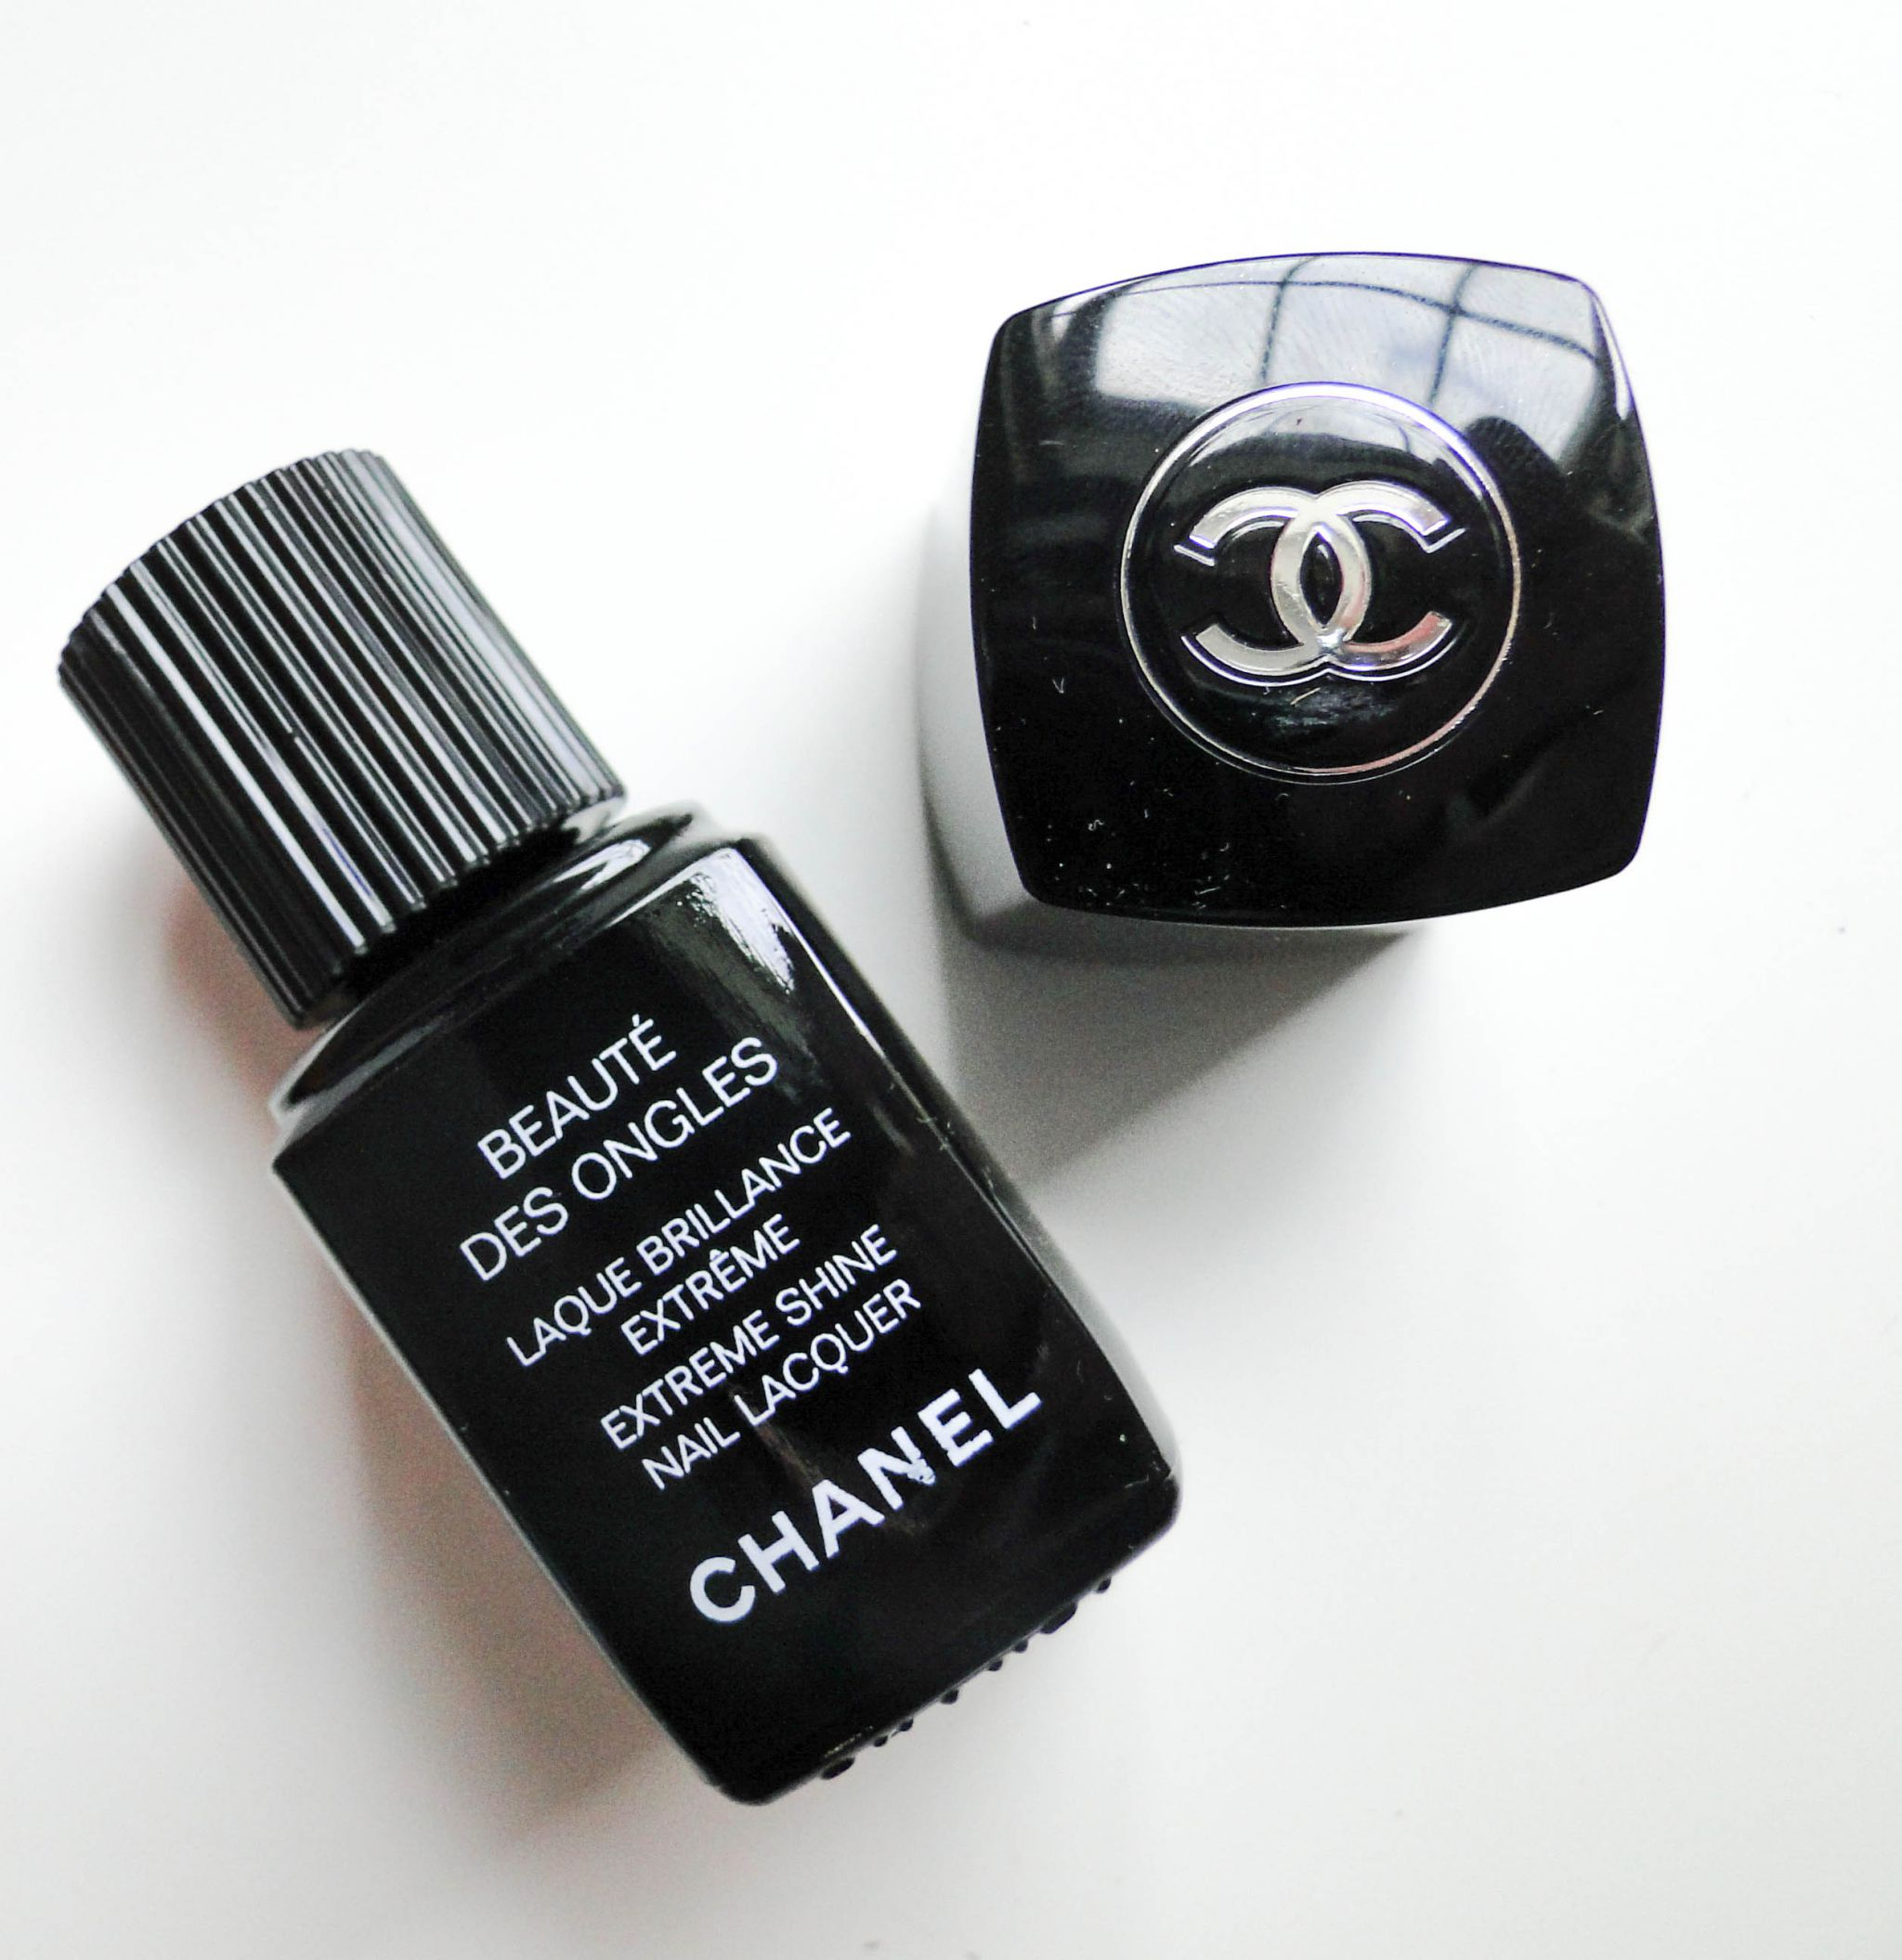 Chanel Beaute Des Ongles Extreme Shine Nail Lacquer-3